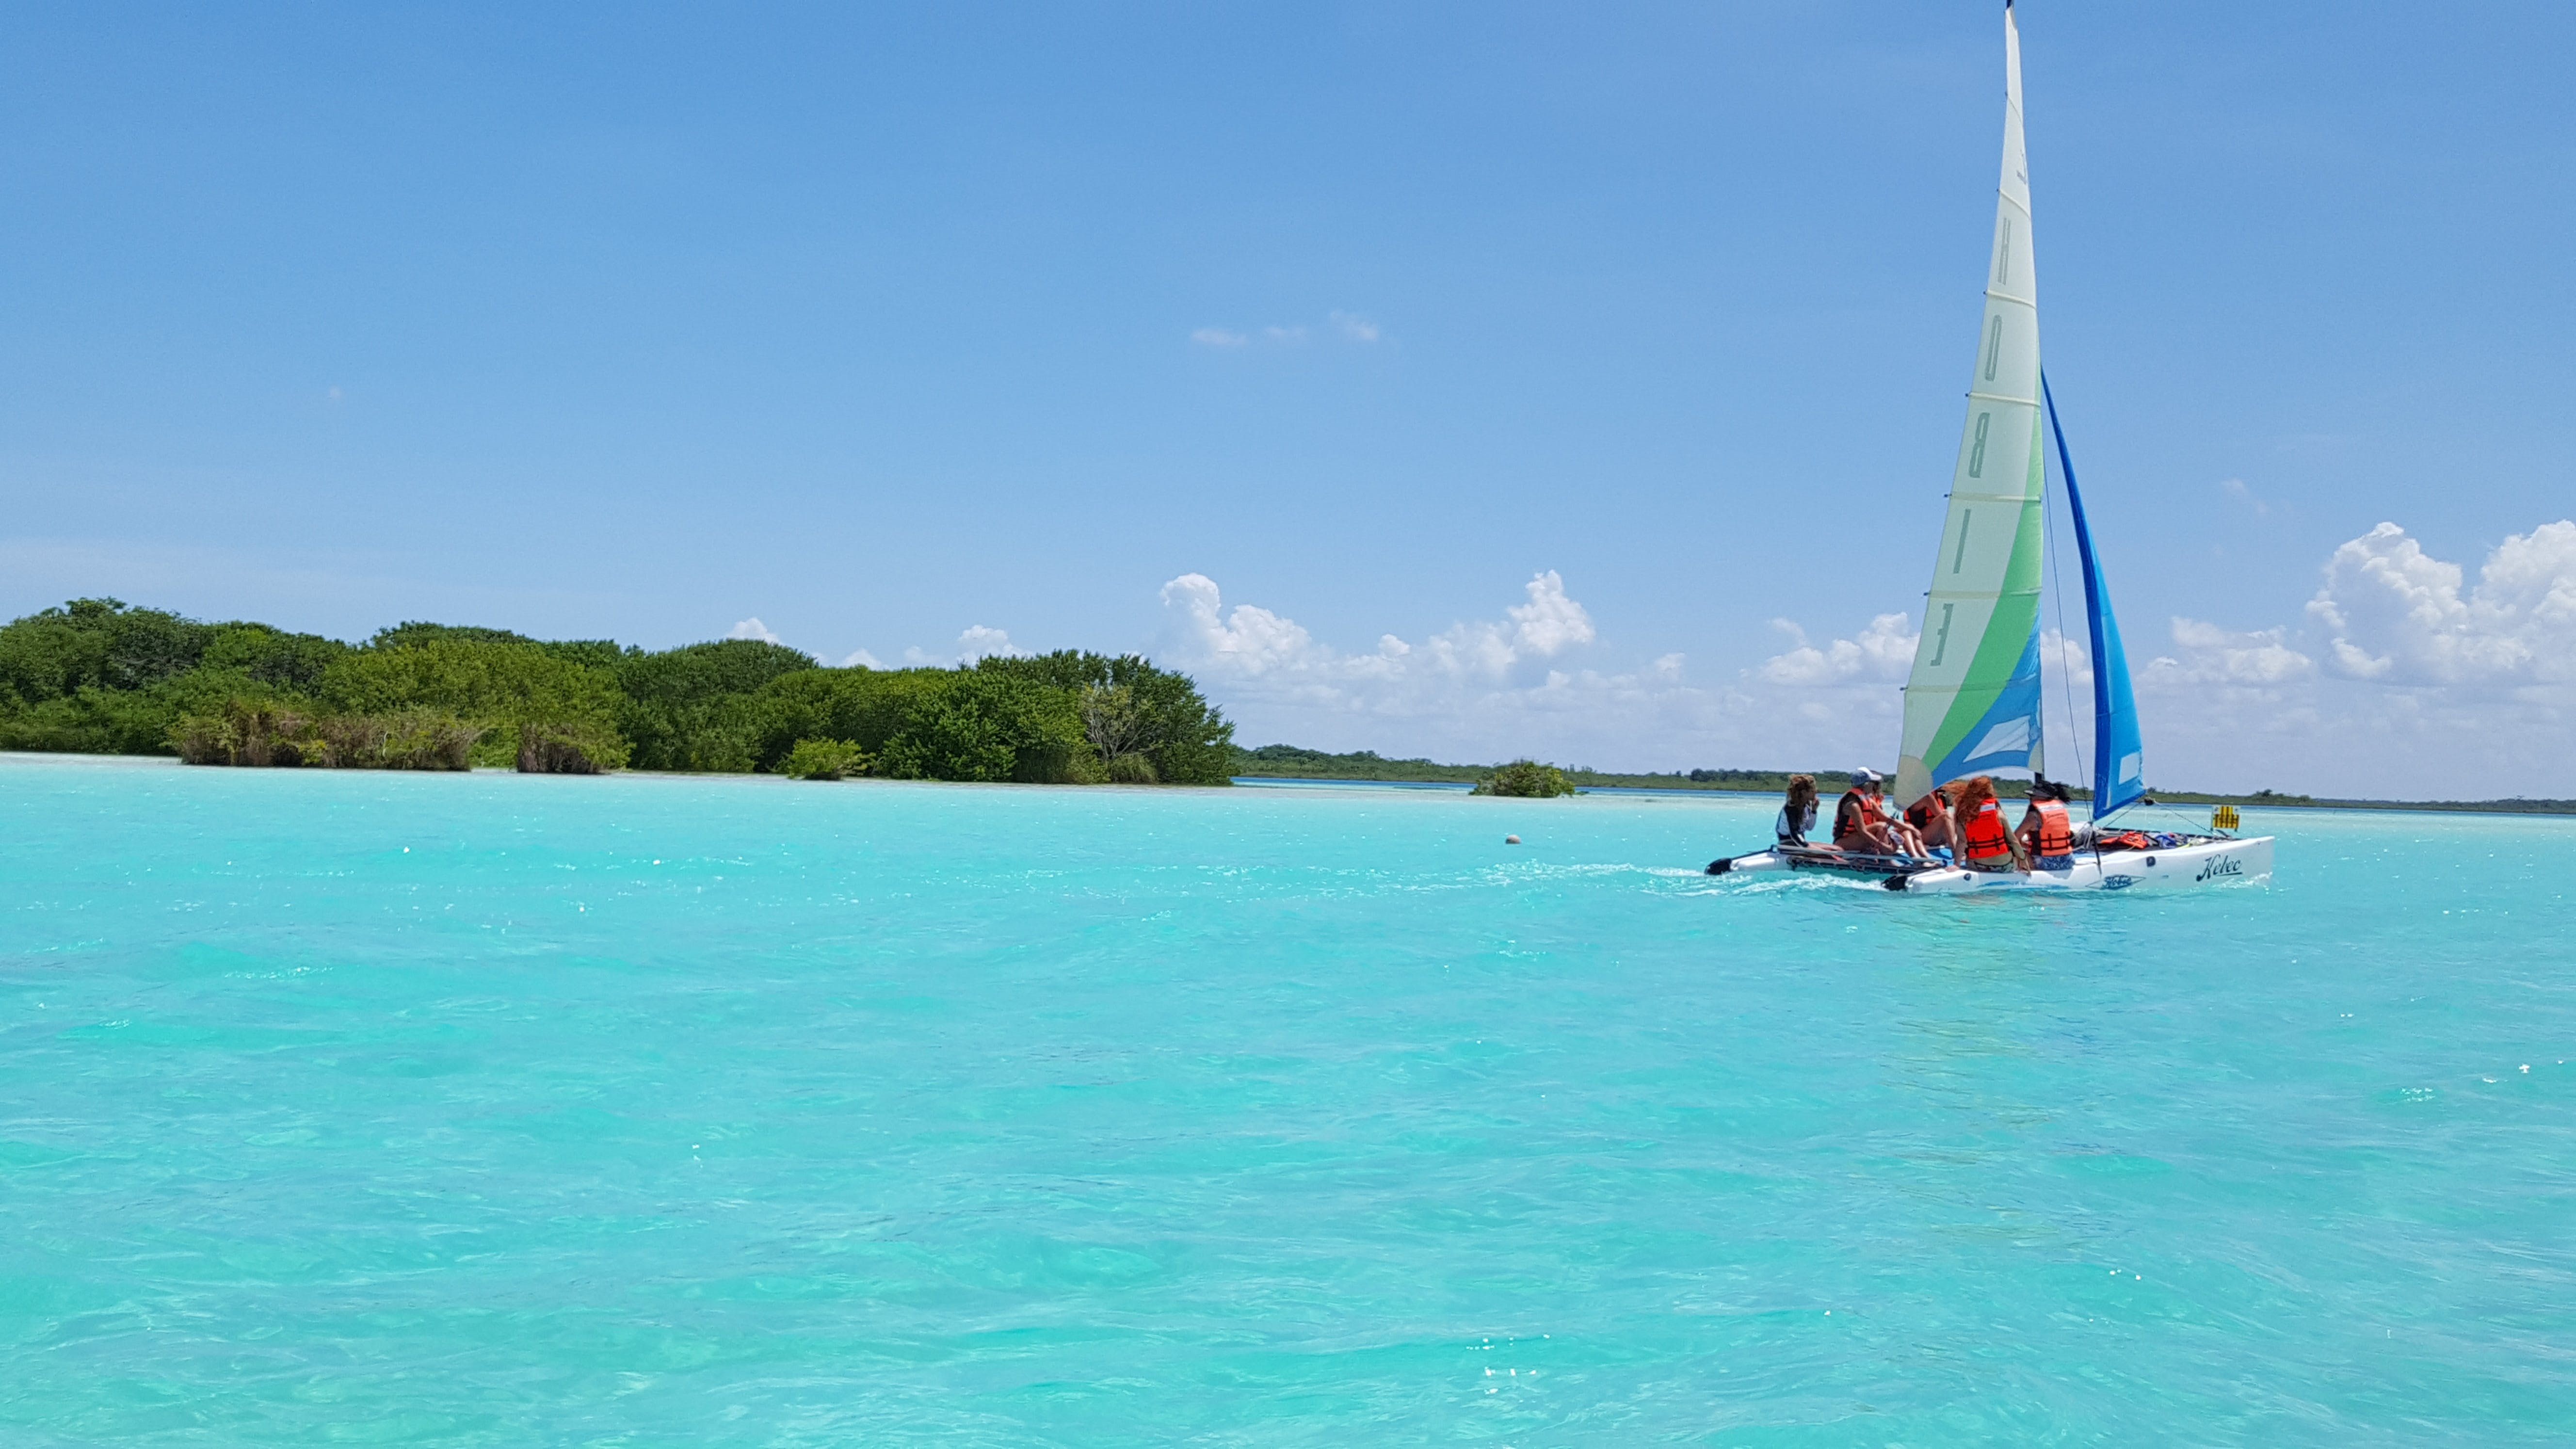 Group of People Riding Sailboat on Body of Water